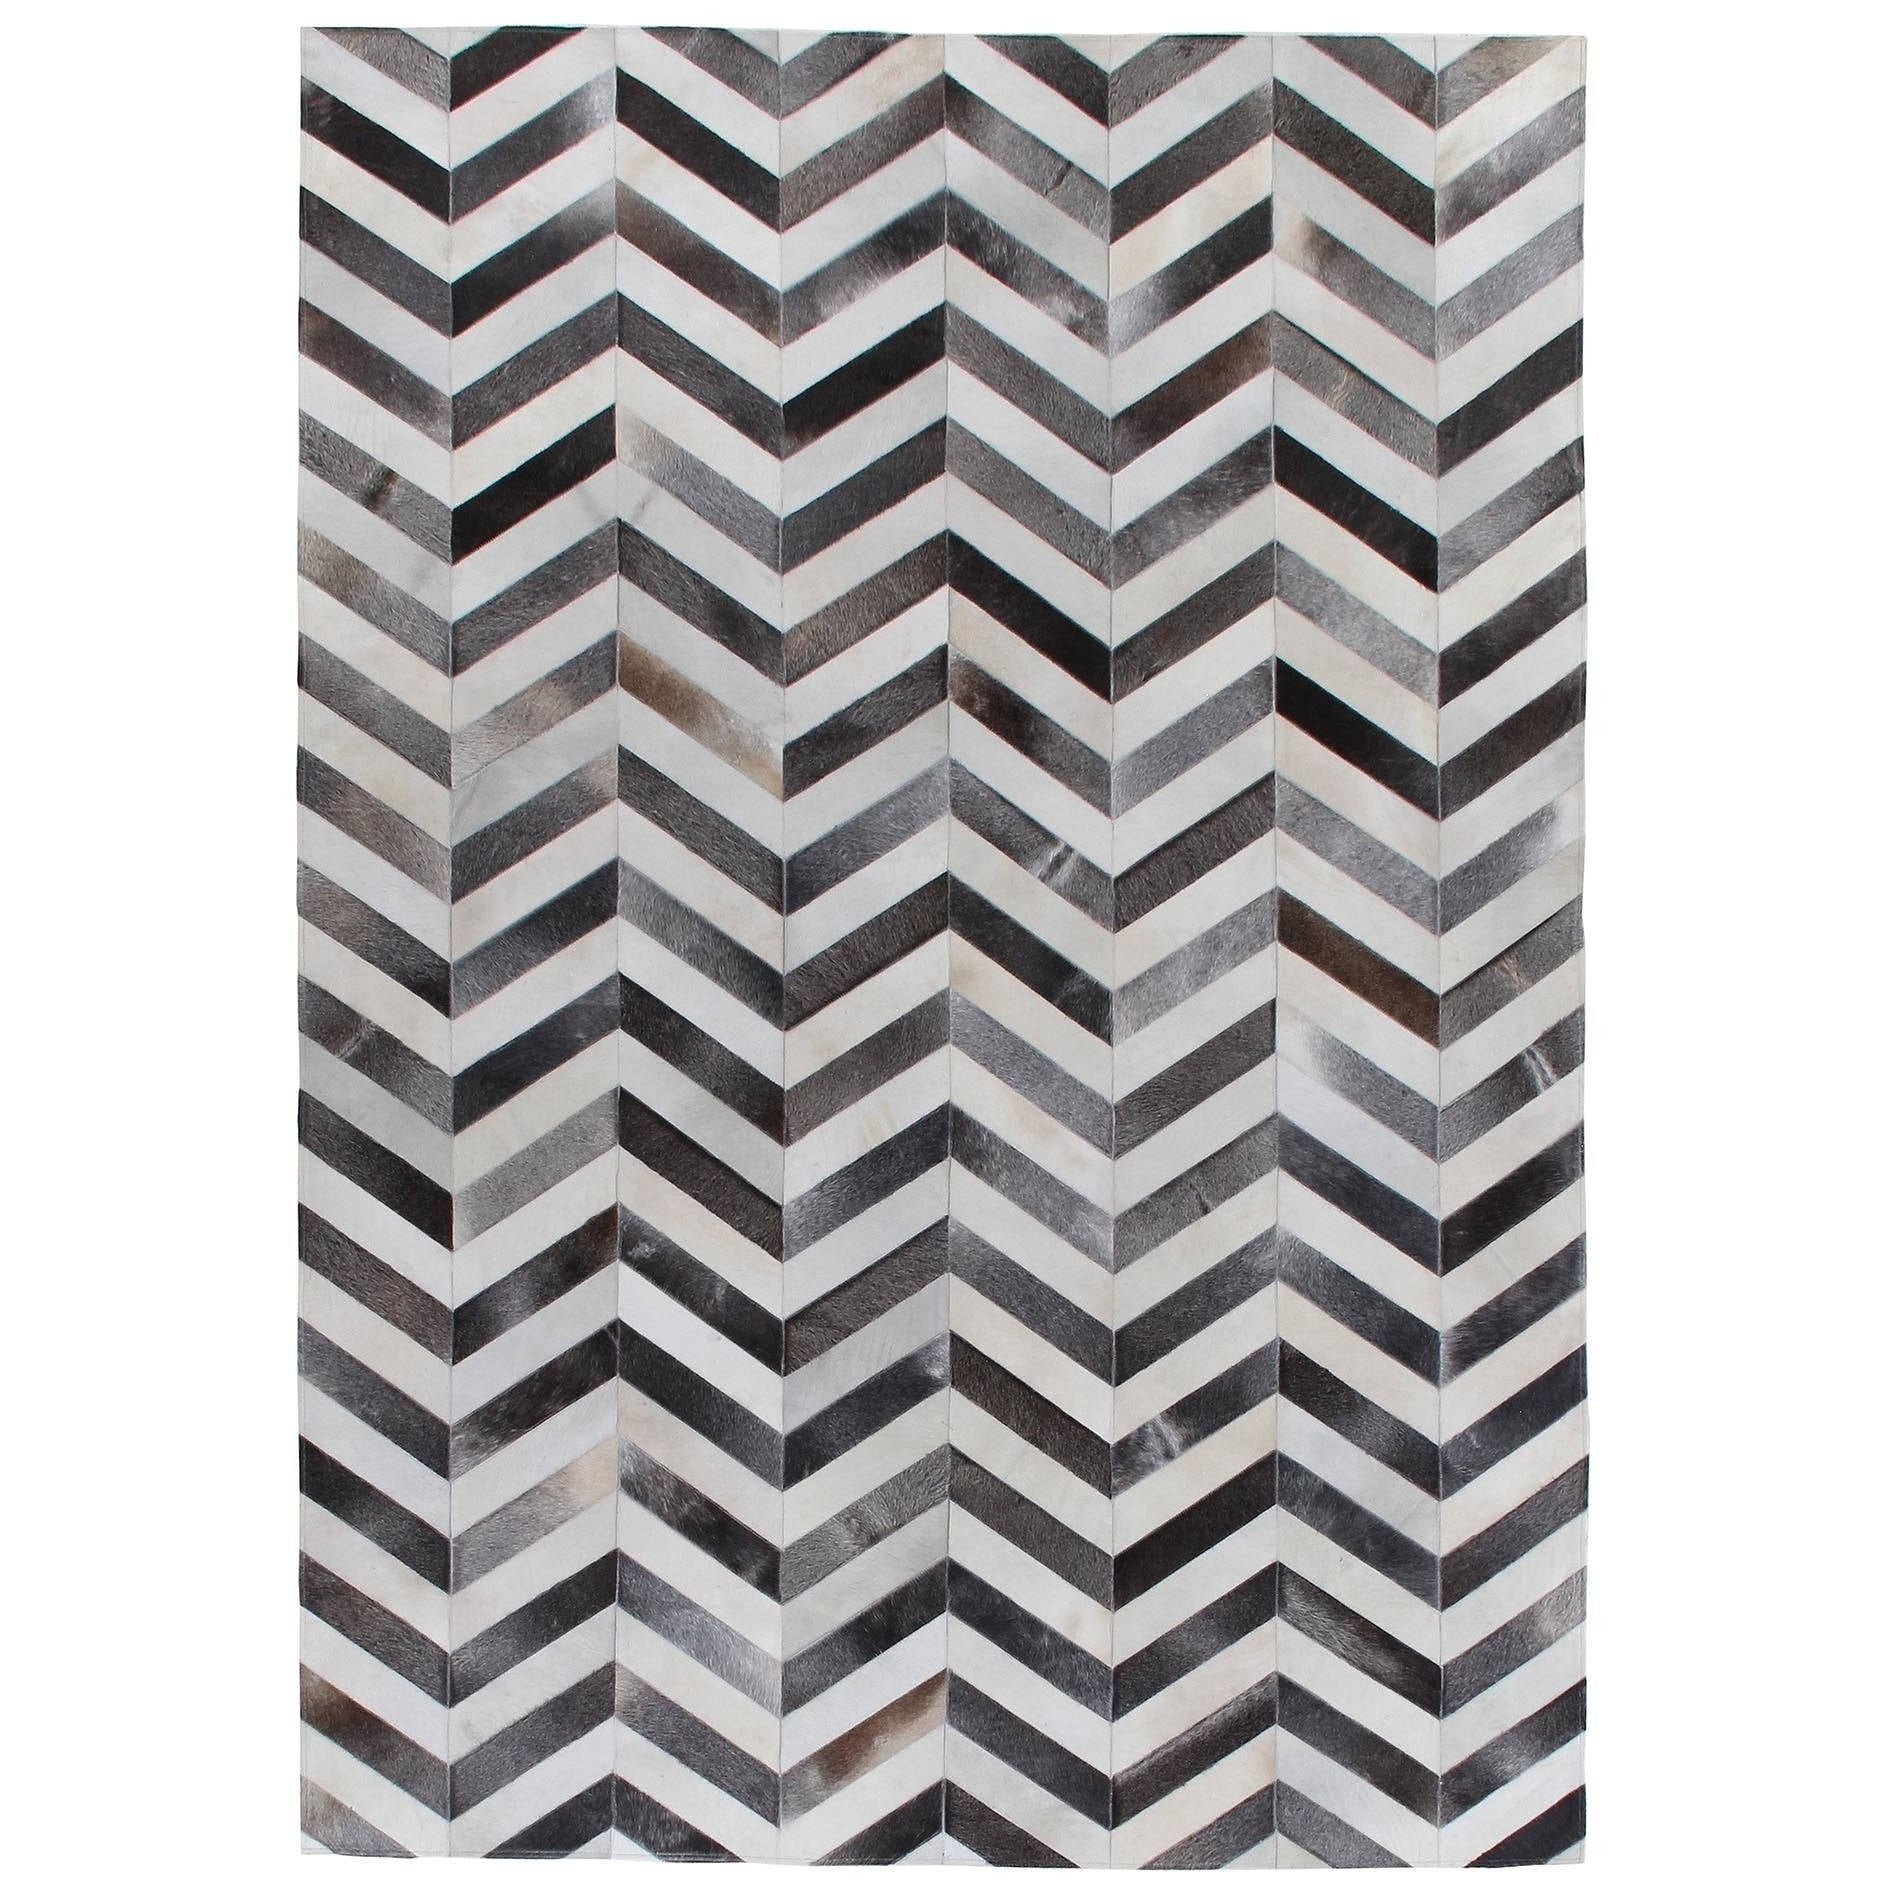 Exquisite Rugs Chevron Hide Grey White Leather Hair on Hide Rug 9